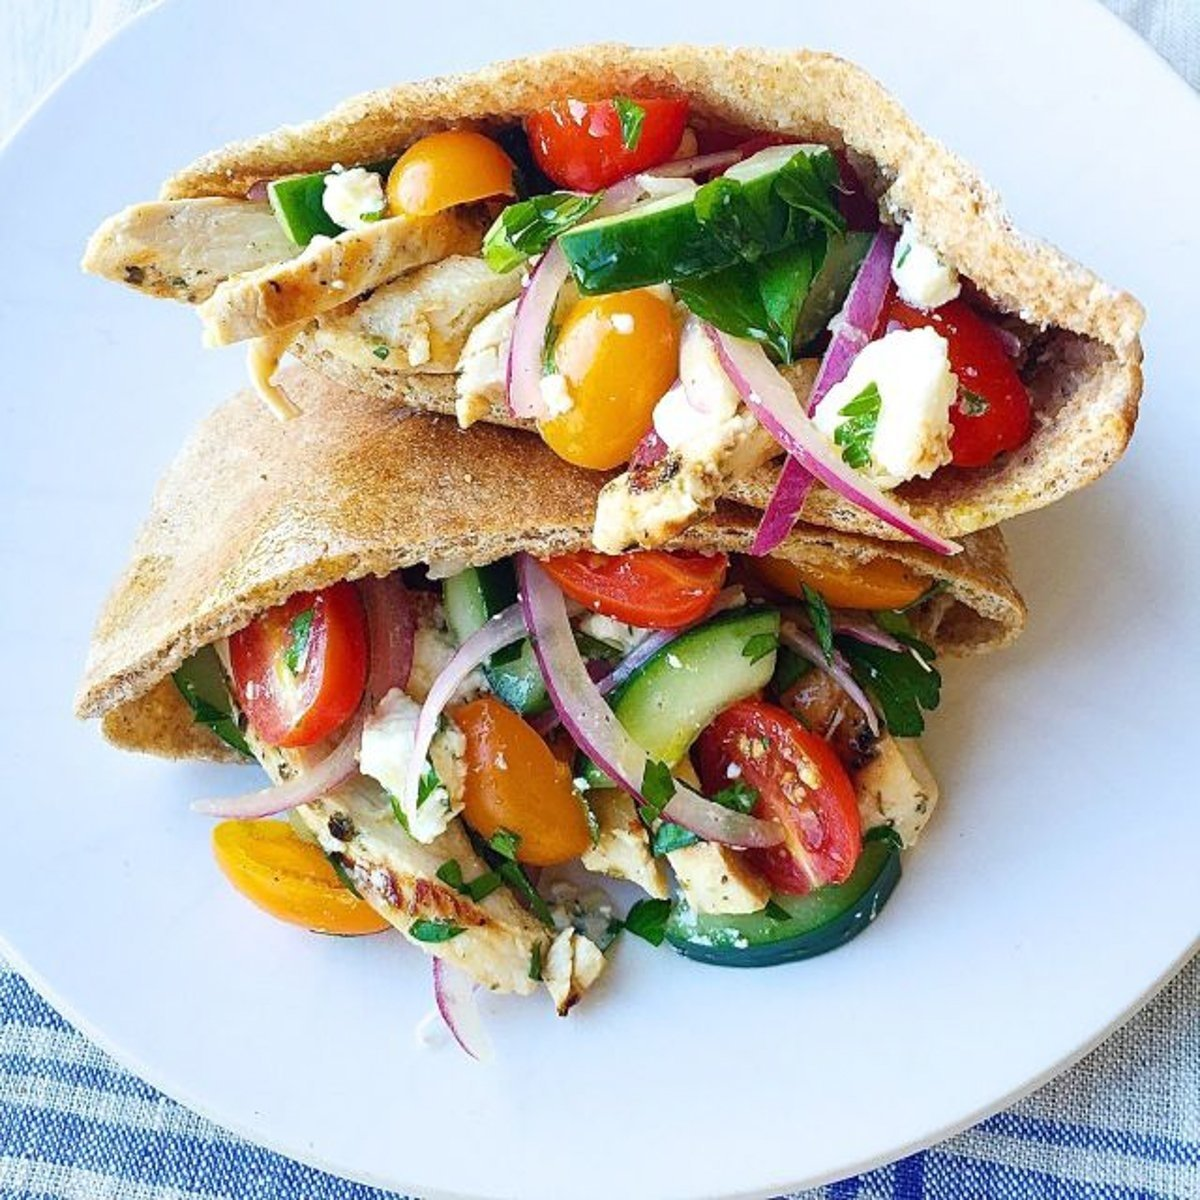 10 Lovable Cold Lunch Ideas For Work 16 make ahead cold lunch ideas to prep for work this week 2 2020